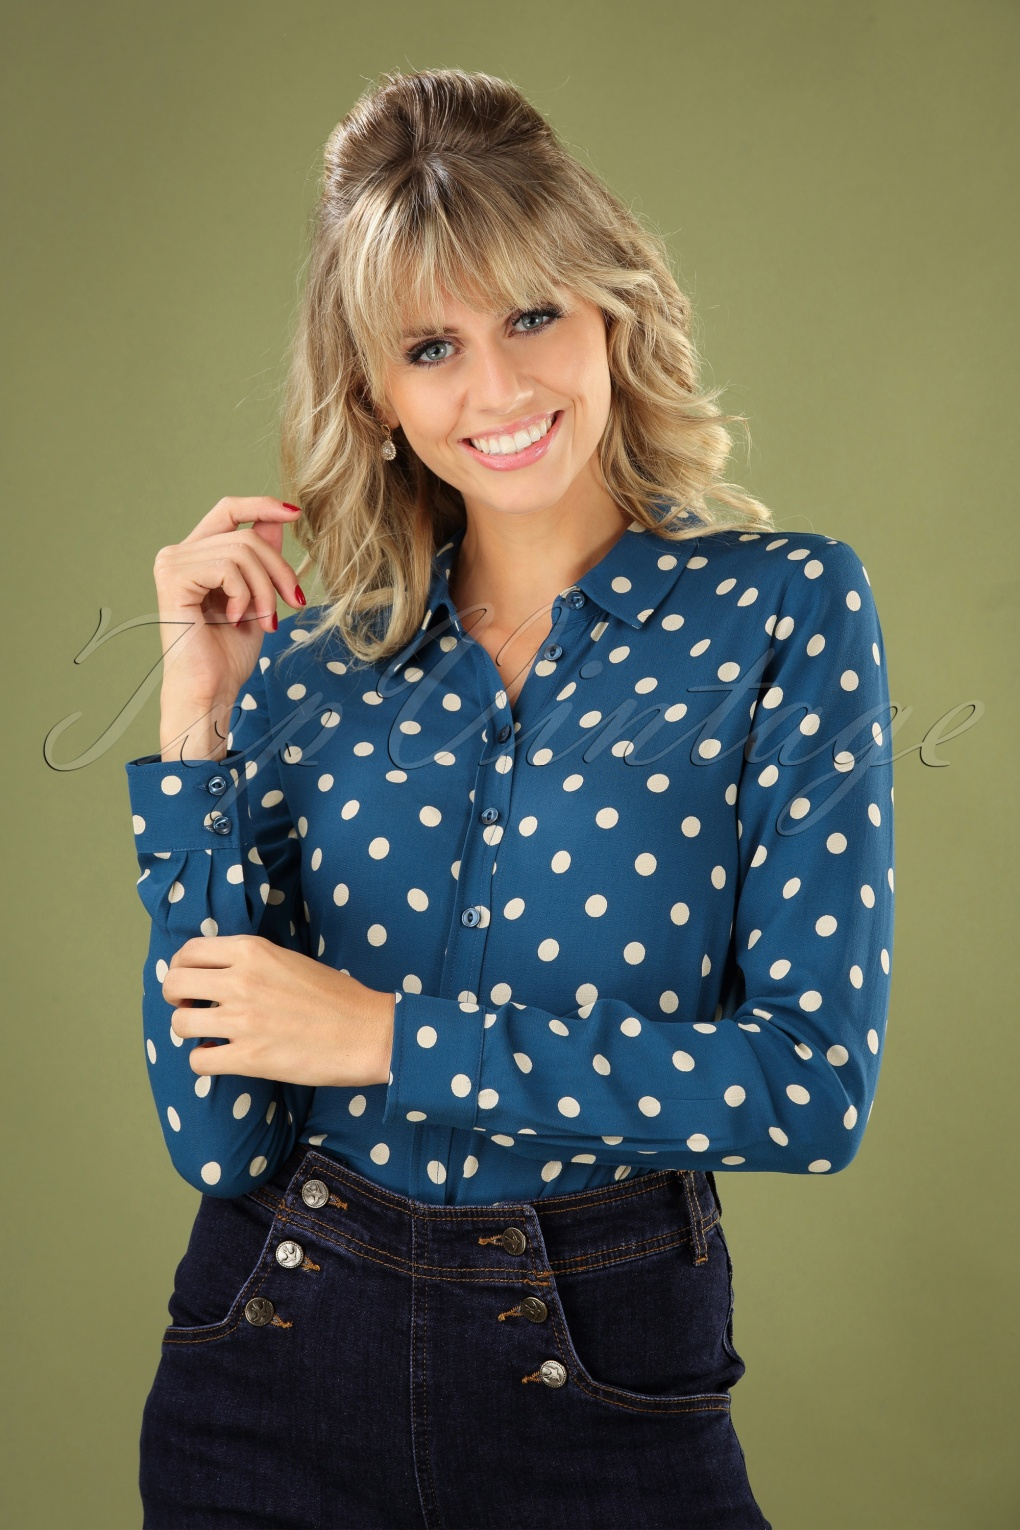 Vintage Inspired Dresses & Clothing UK 70s Rosie Polkadot Blouse in Autumn Blue £71.62 AT vintagedancer.com